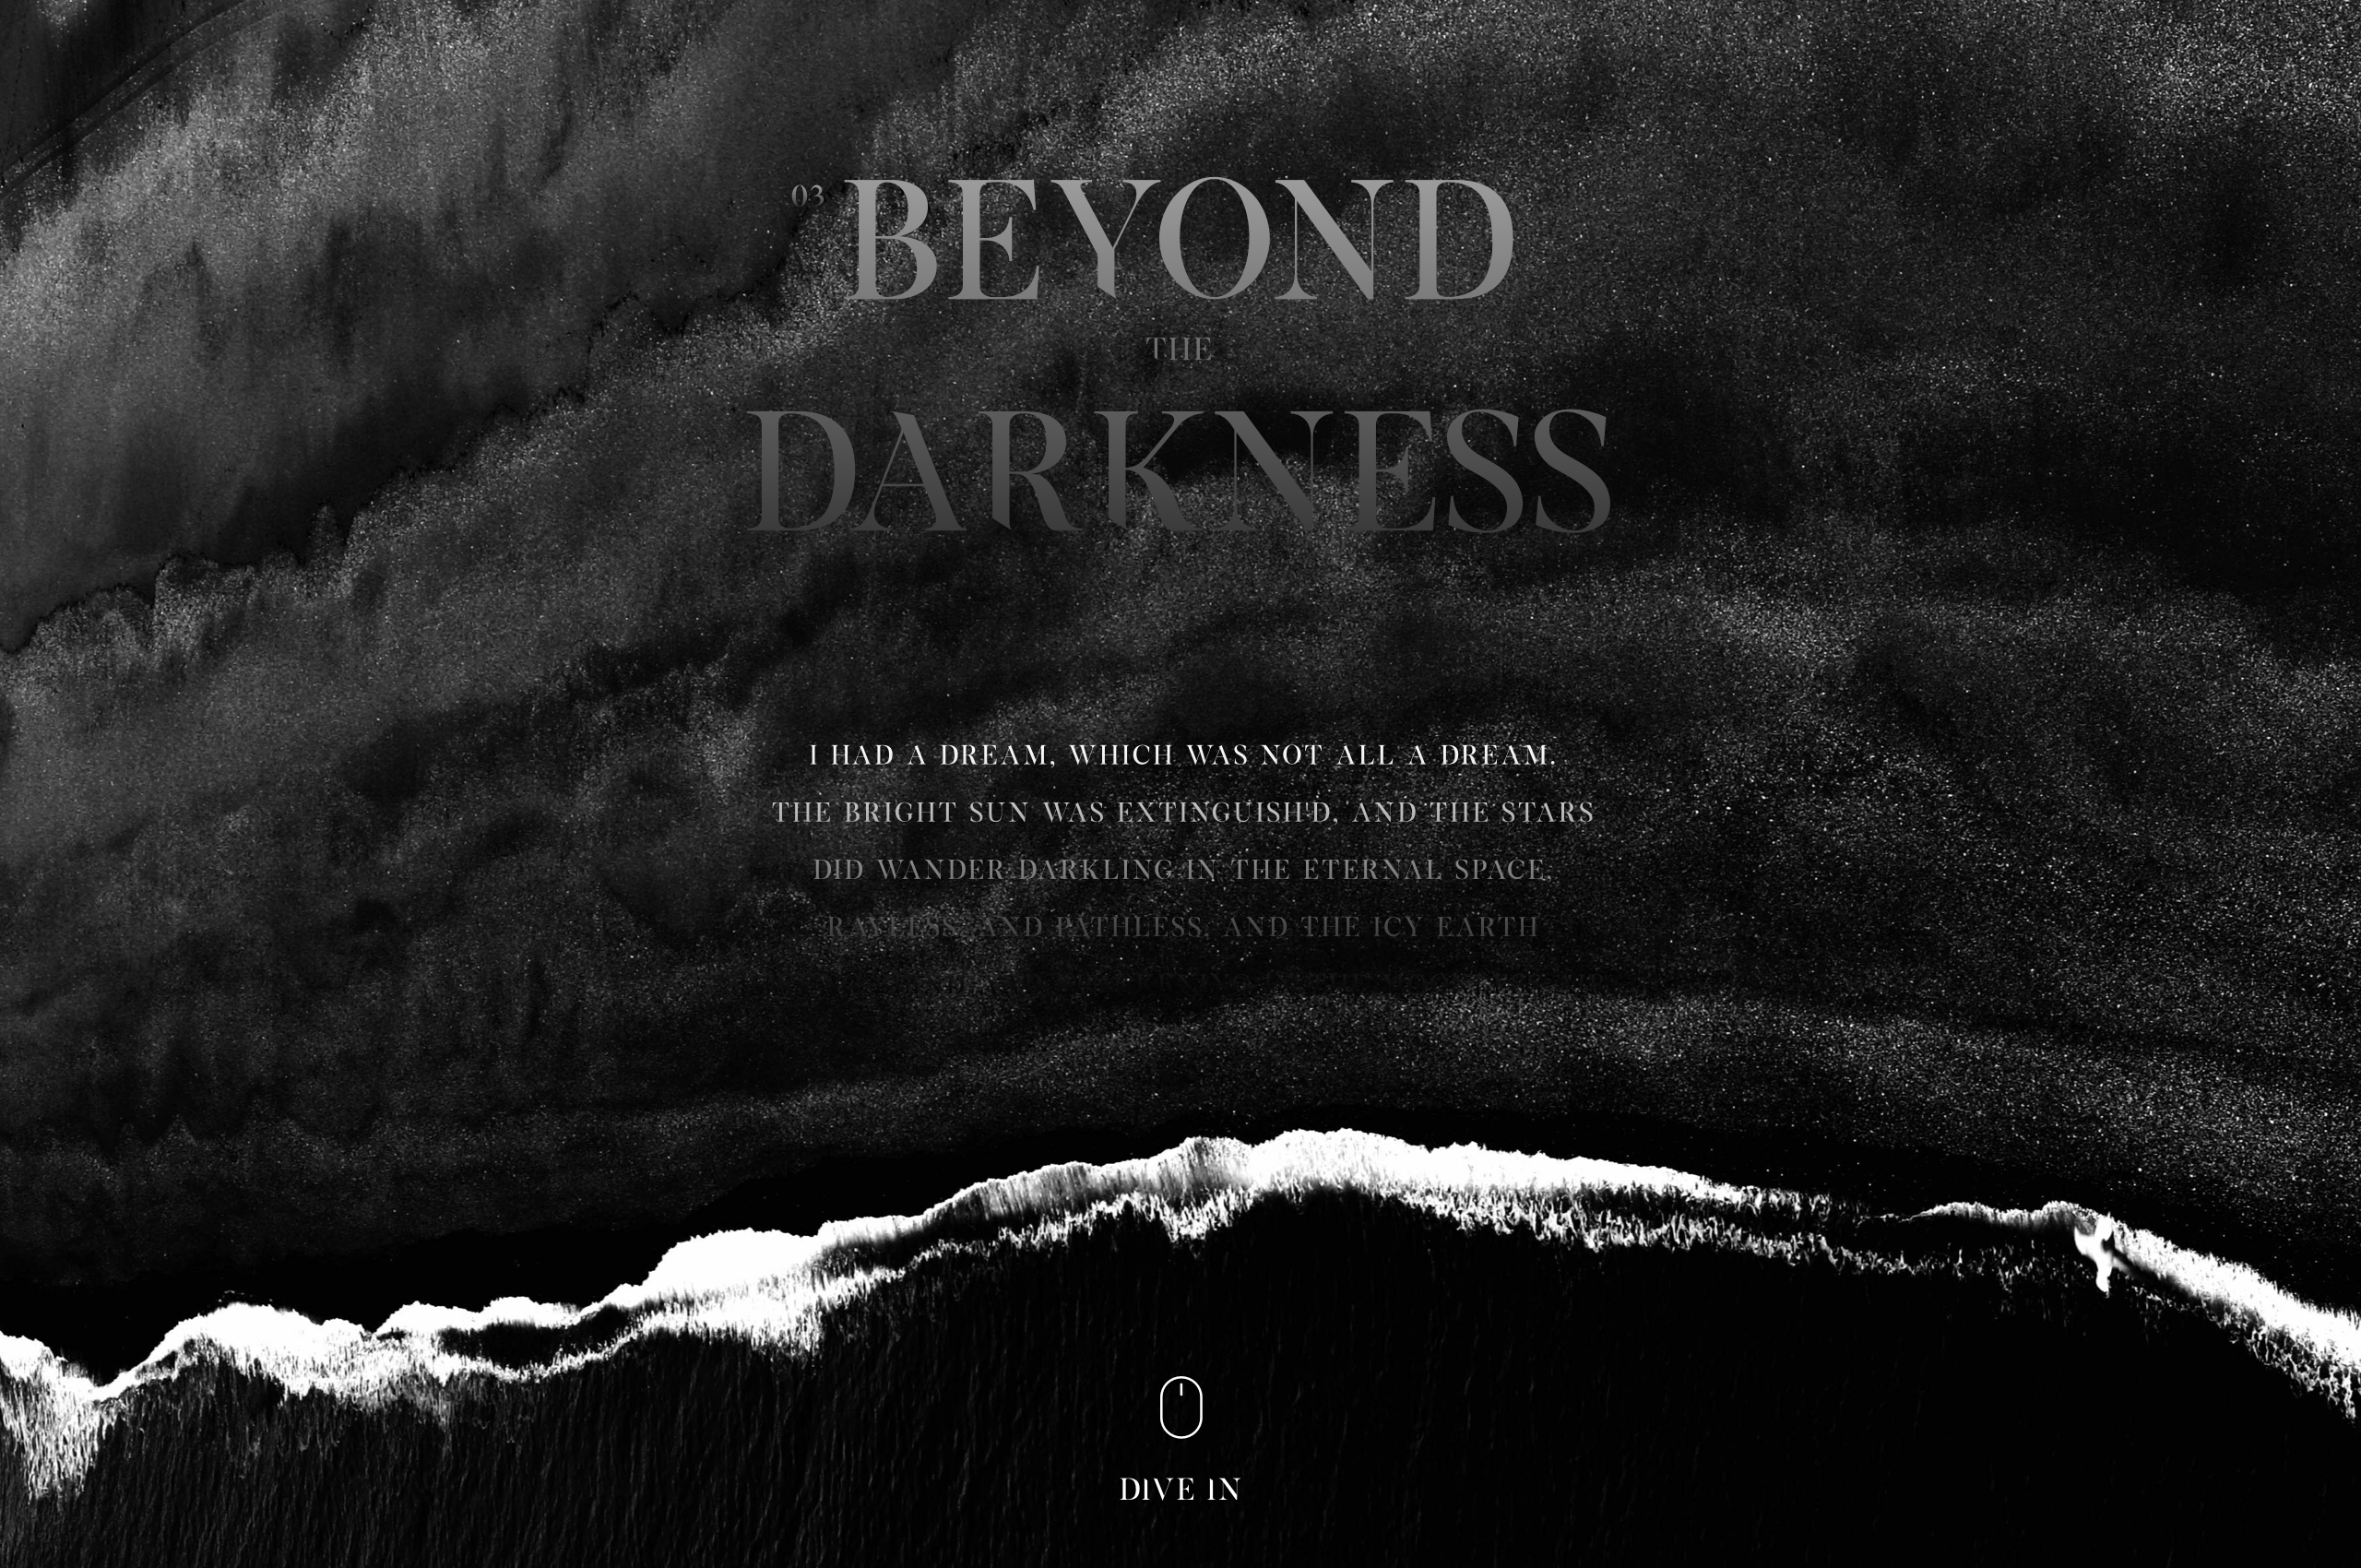 Beyond the darkness 2x